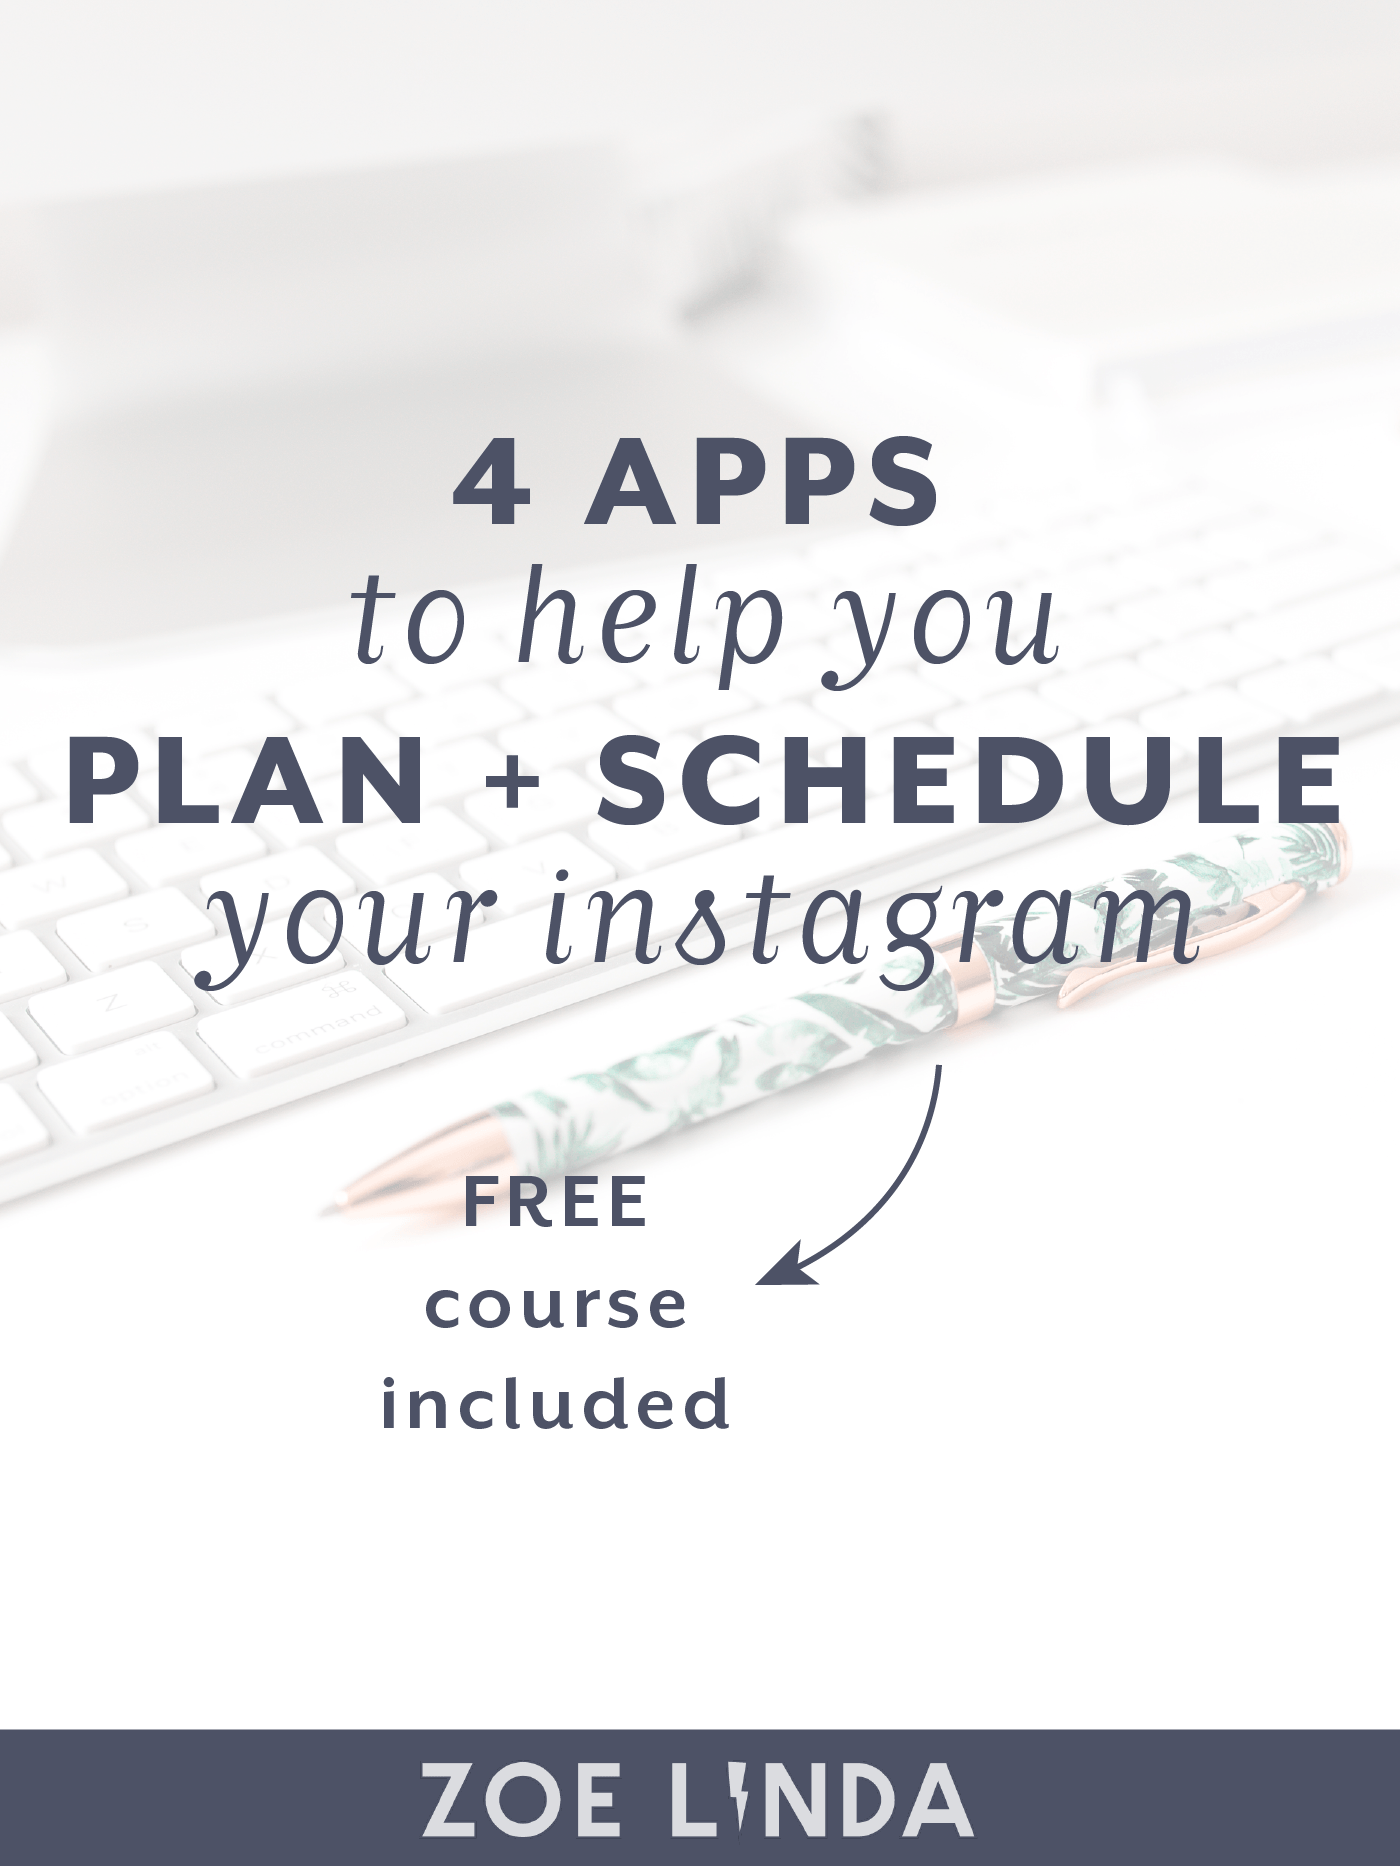 The Best Apps For Editing Scheduling Your Instagram Posts | There are so many Instagram apps out there - it can get a little confusing. If you're a blogging, creative biz owner or entrepreneur, you're gonna want to learn about my must-have Instagram apps! Click through to find out about my favourite apps AND get a great discount too!